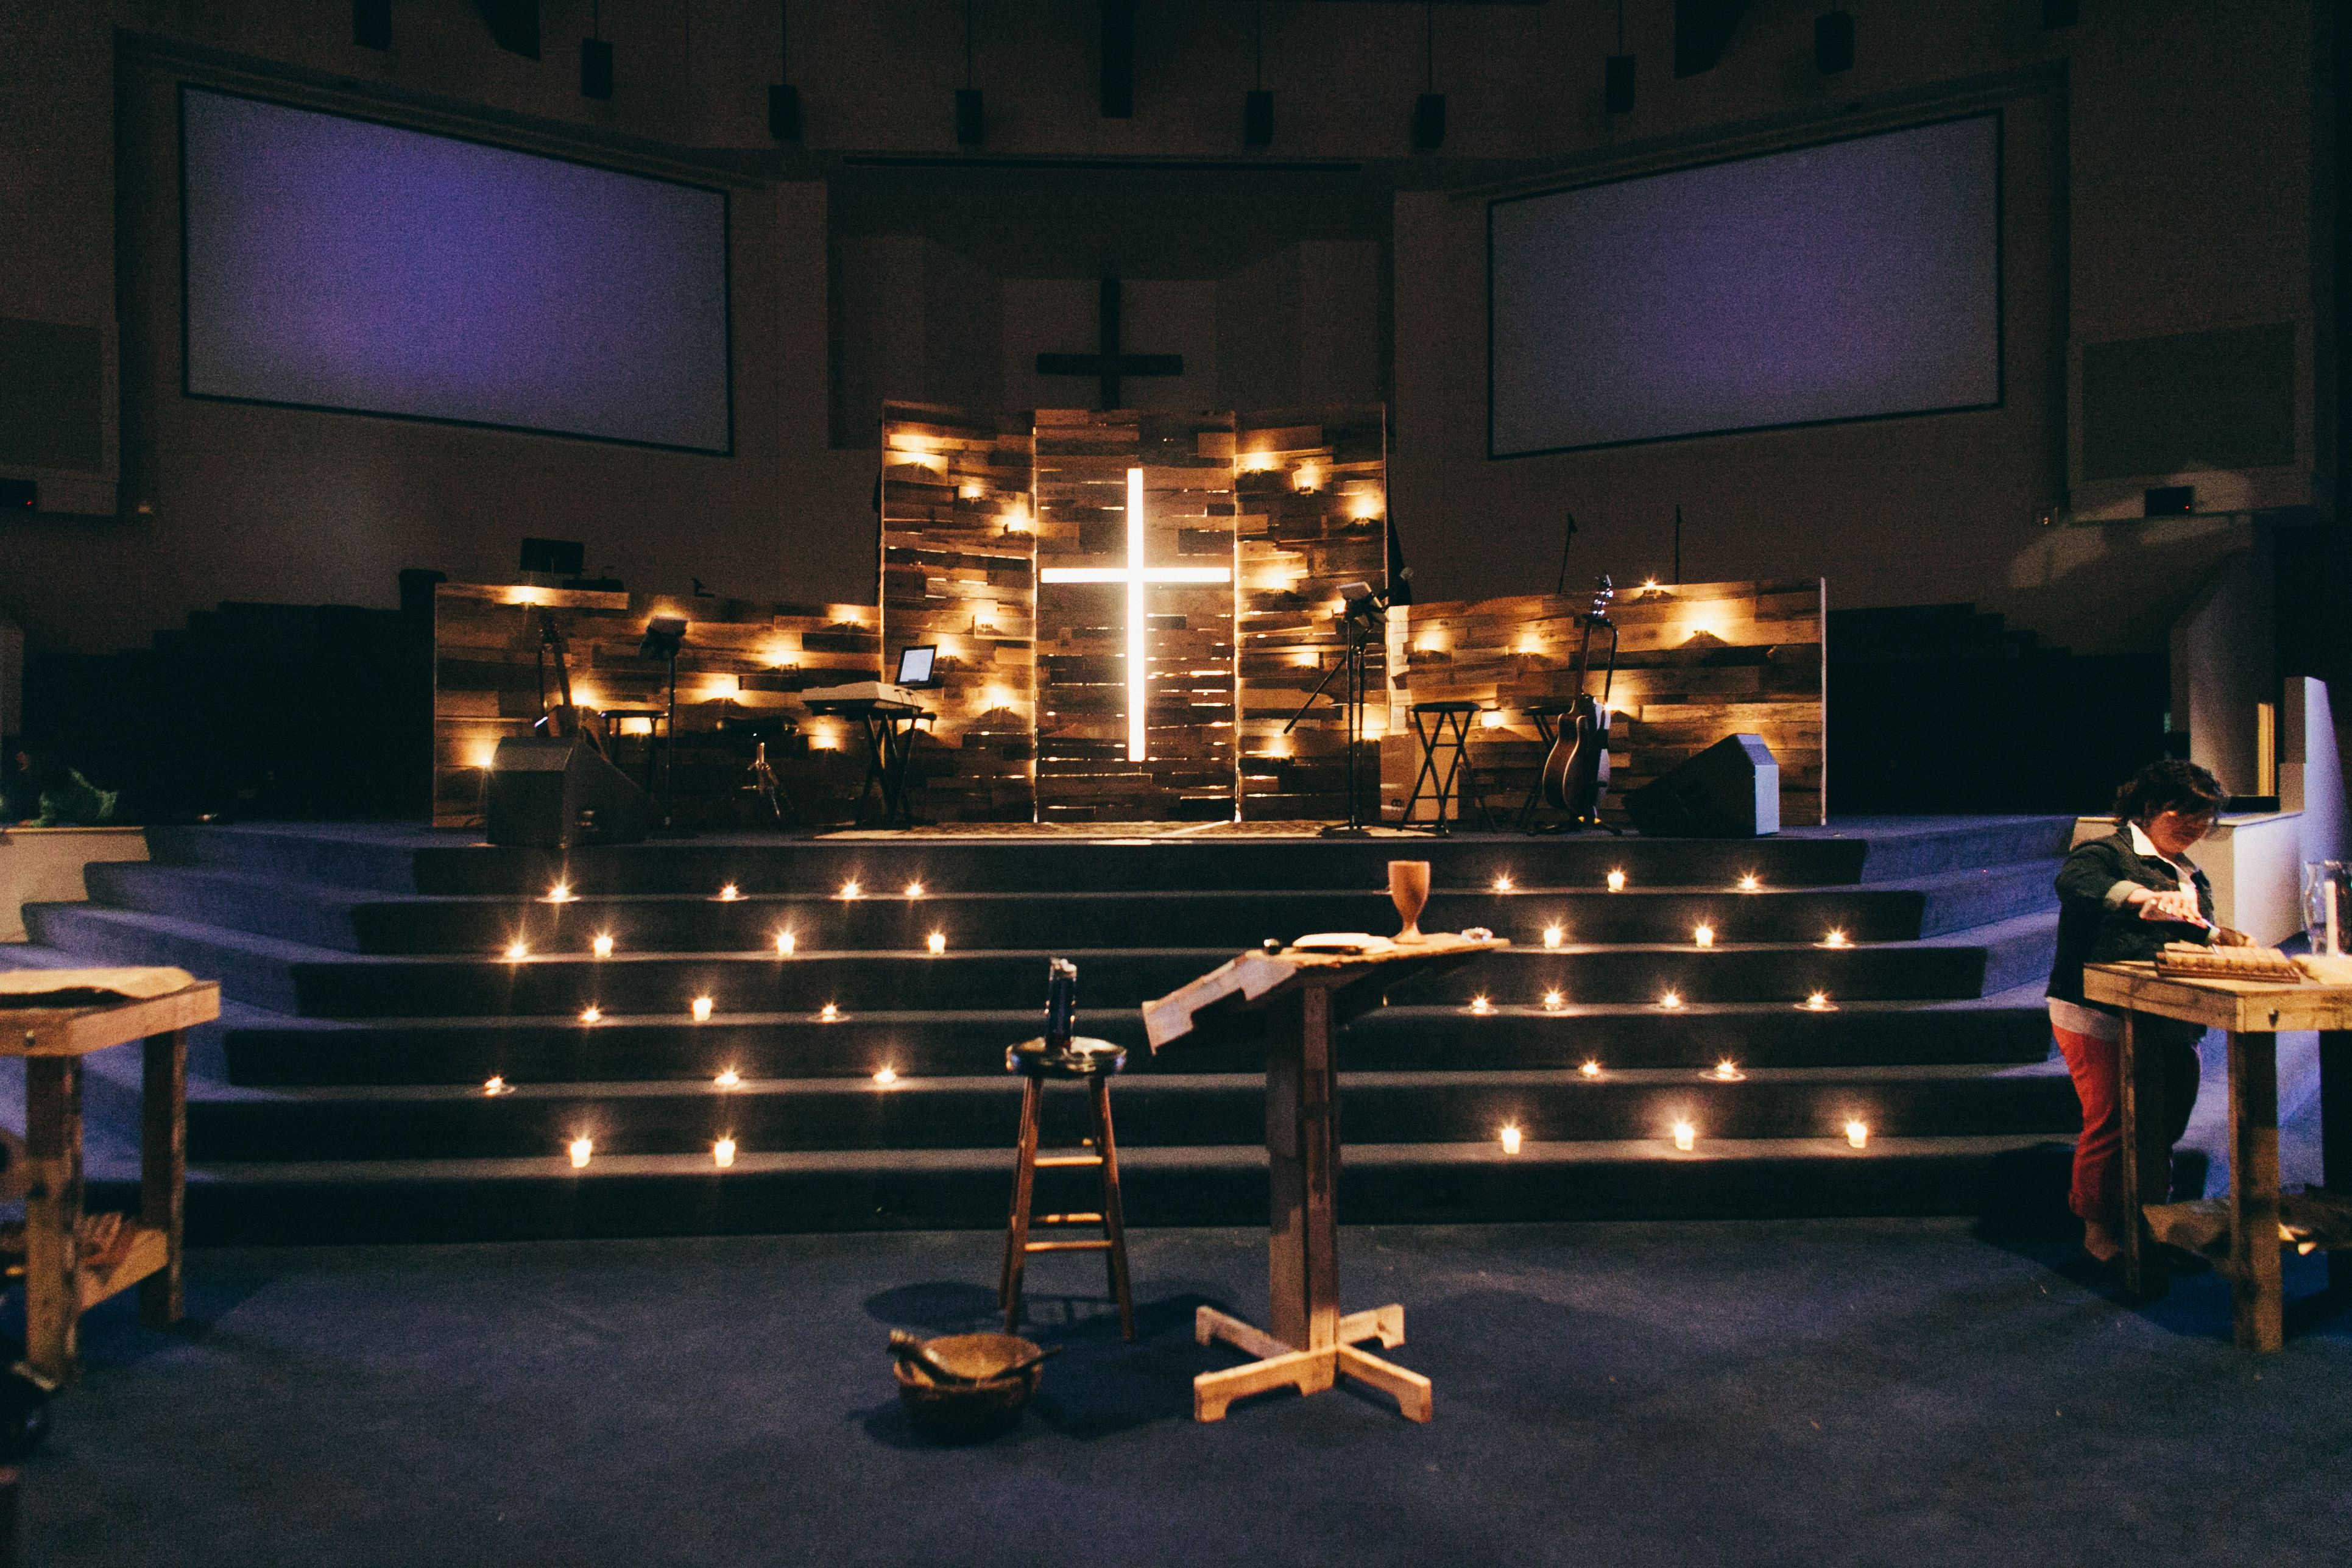 For this Worship Space feature, we contacted Kyle Gordon of Valley ...